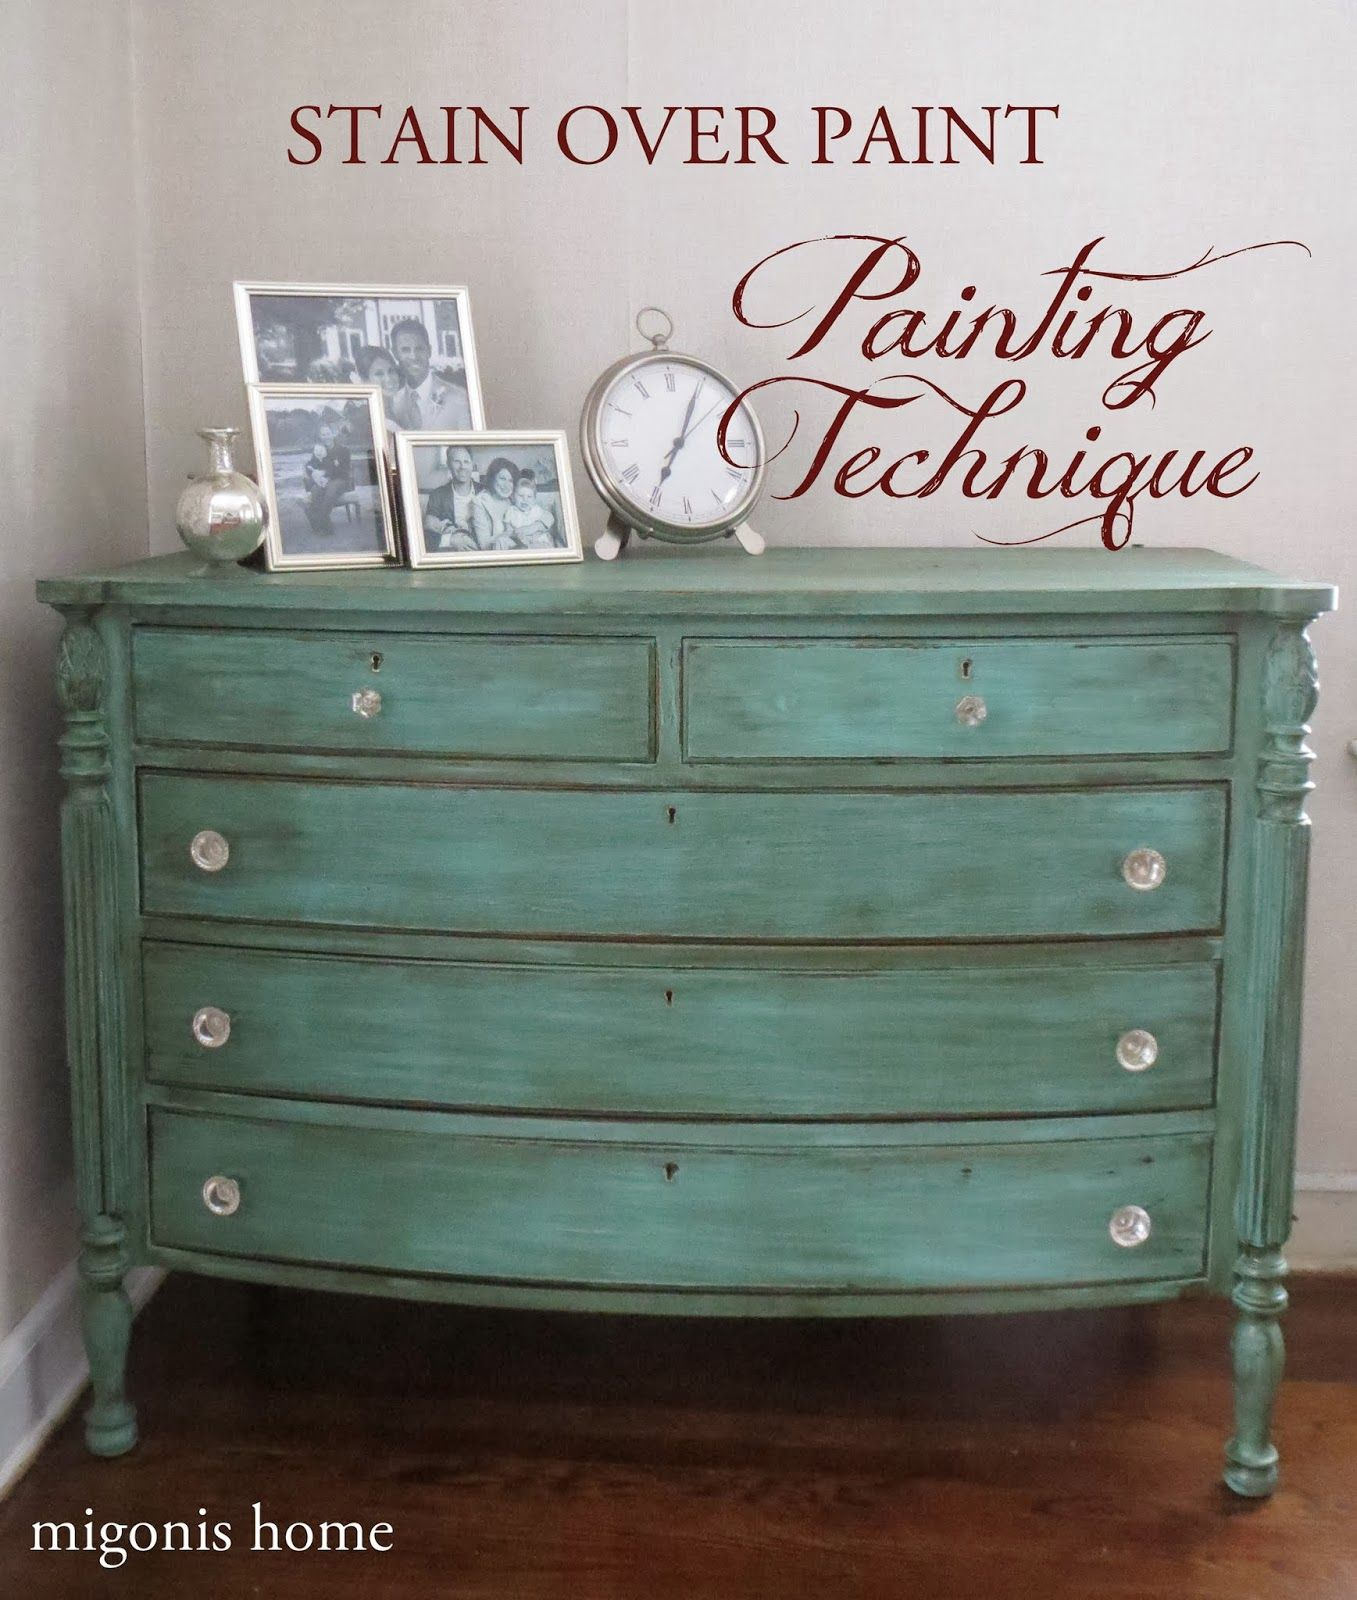 Stain over Paint Technique by Migonis Home #countrychicpaint - Stain Over Paint Technique By Migonis Home #countrychicpaint Share